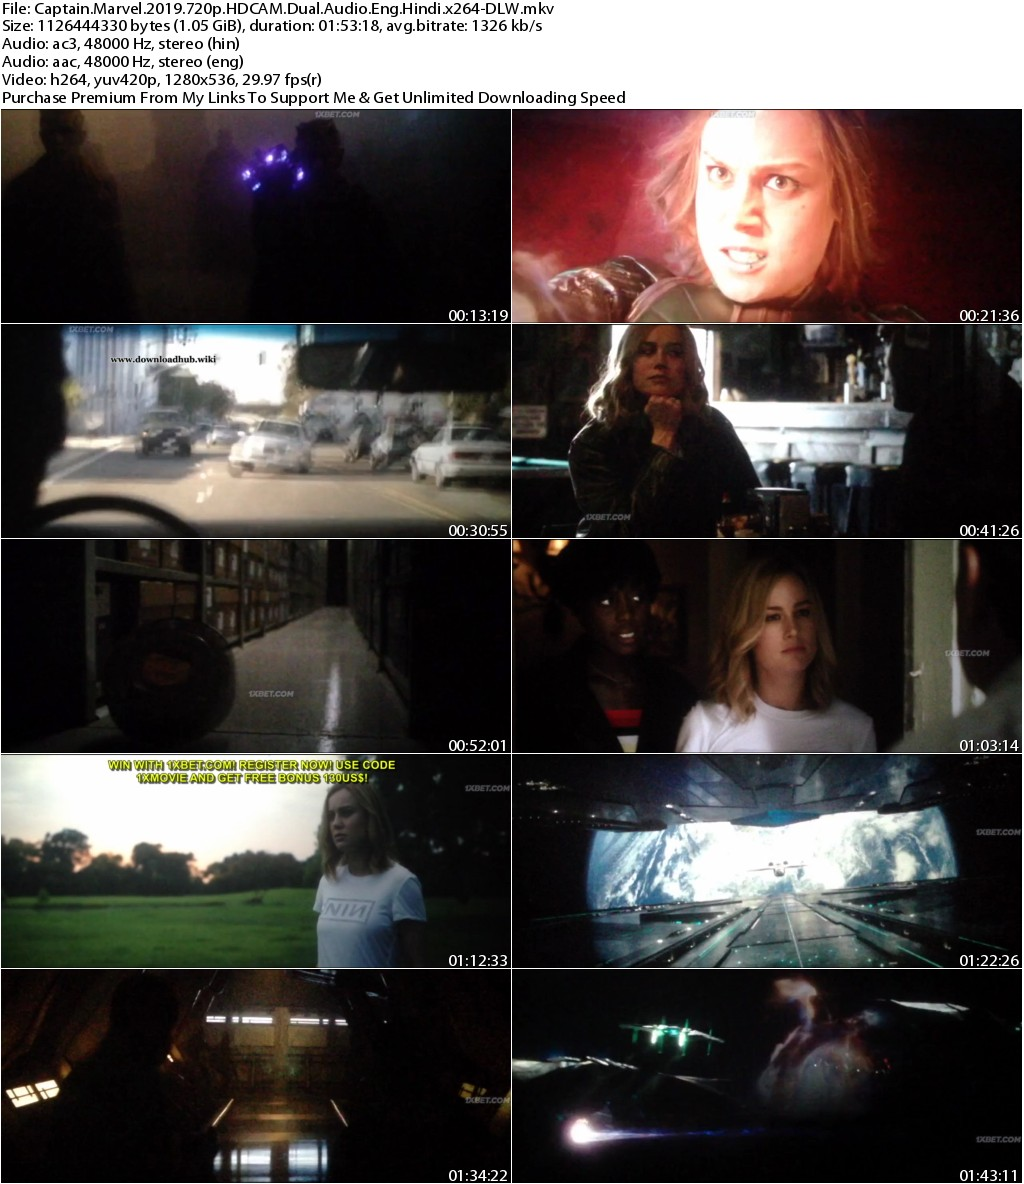 Captain Marvel (2019) 720p HDCAM Dual Audio Eng Hindi x264-DLW